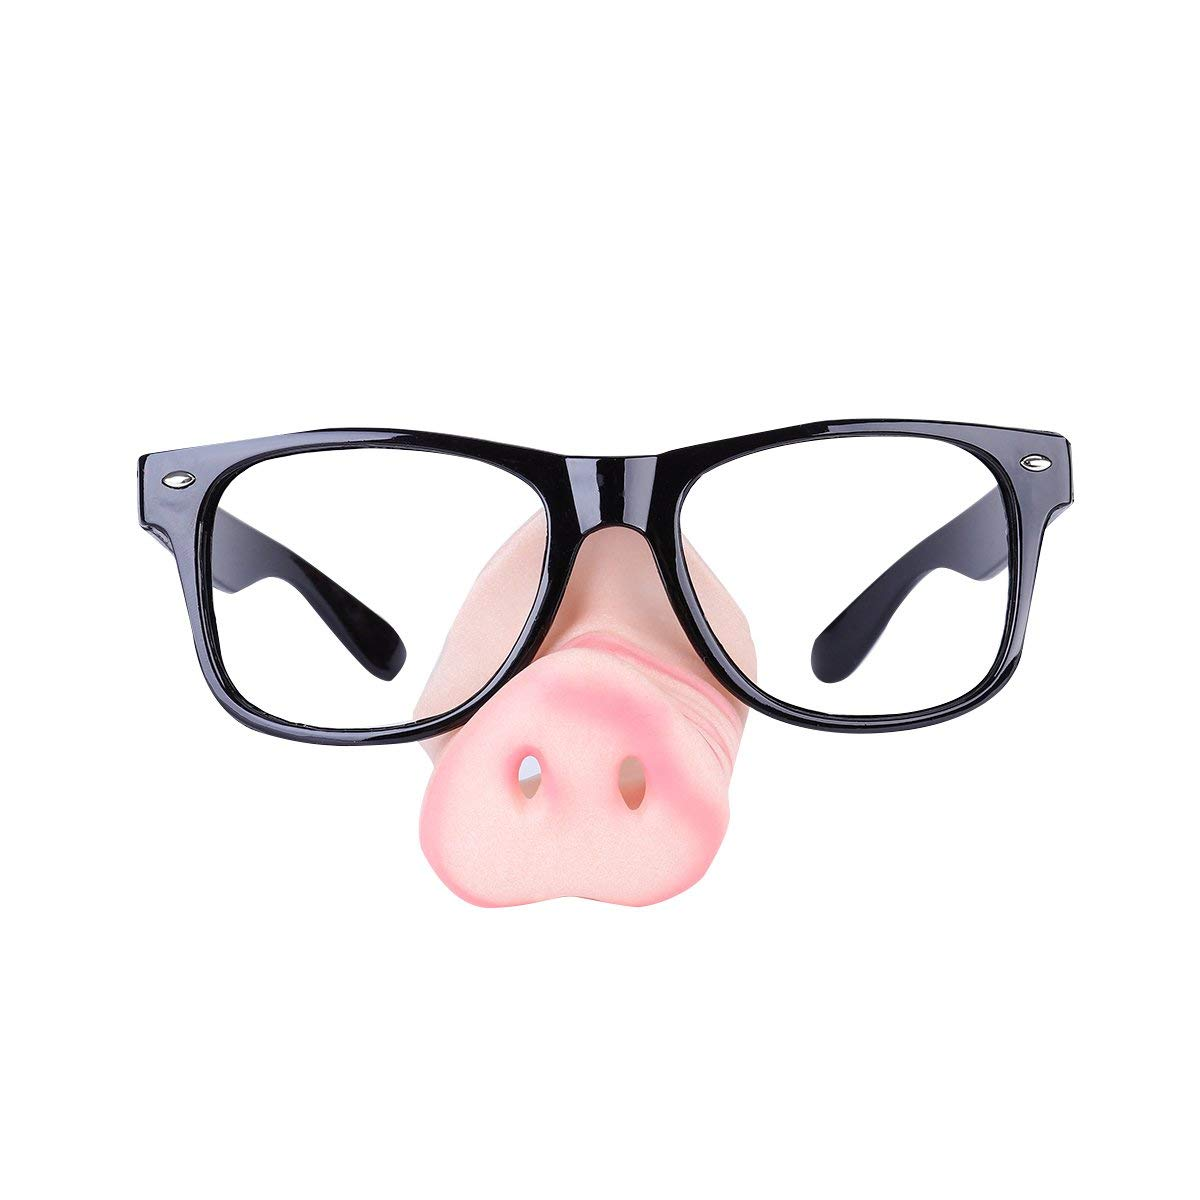 Tinksky Pig Nose Sunglasses/ Specs Glass Square Frame Fancy Dress Piggy Snout Eye-catching Party Glasses Funny Glass Costume Accessories Halloween April Fool 's Day children's party Decoration